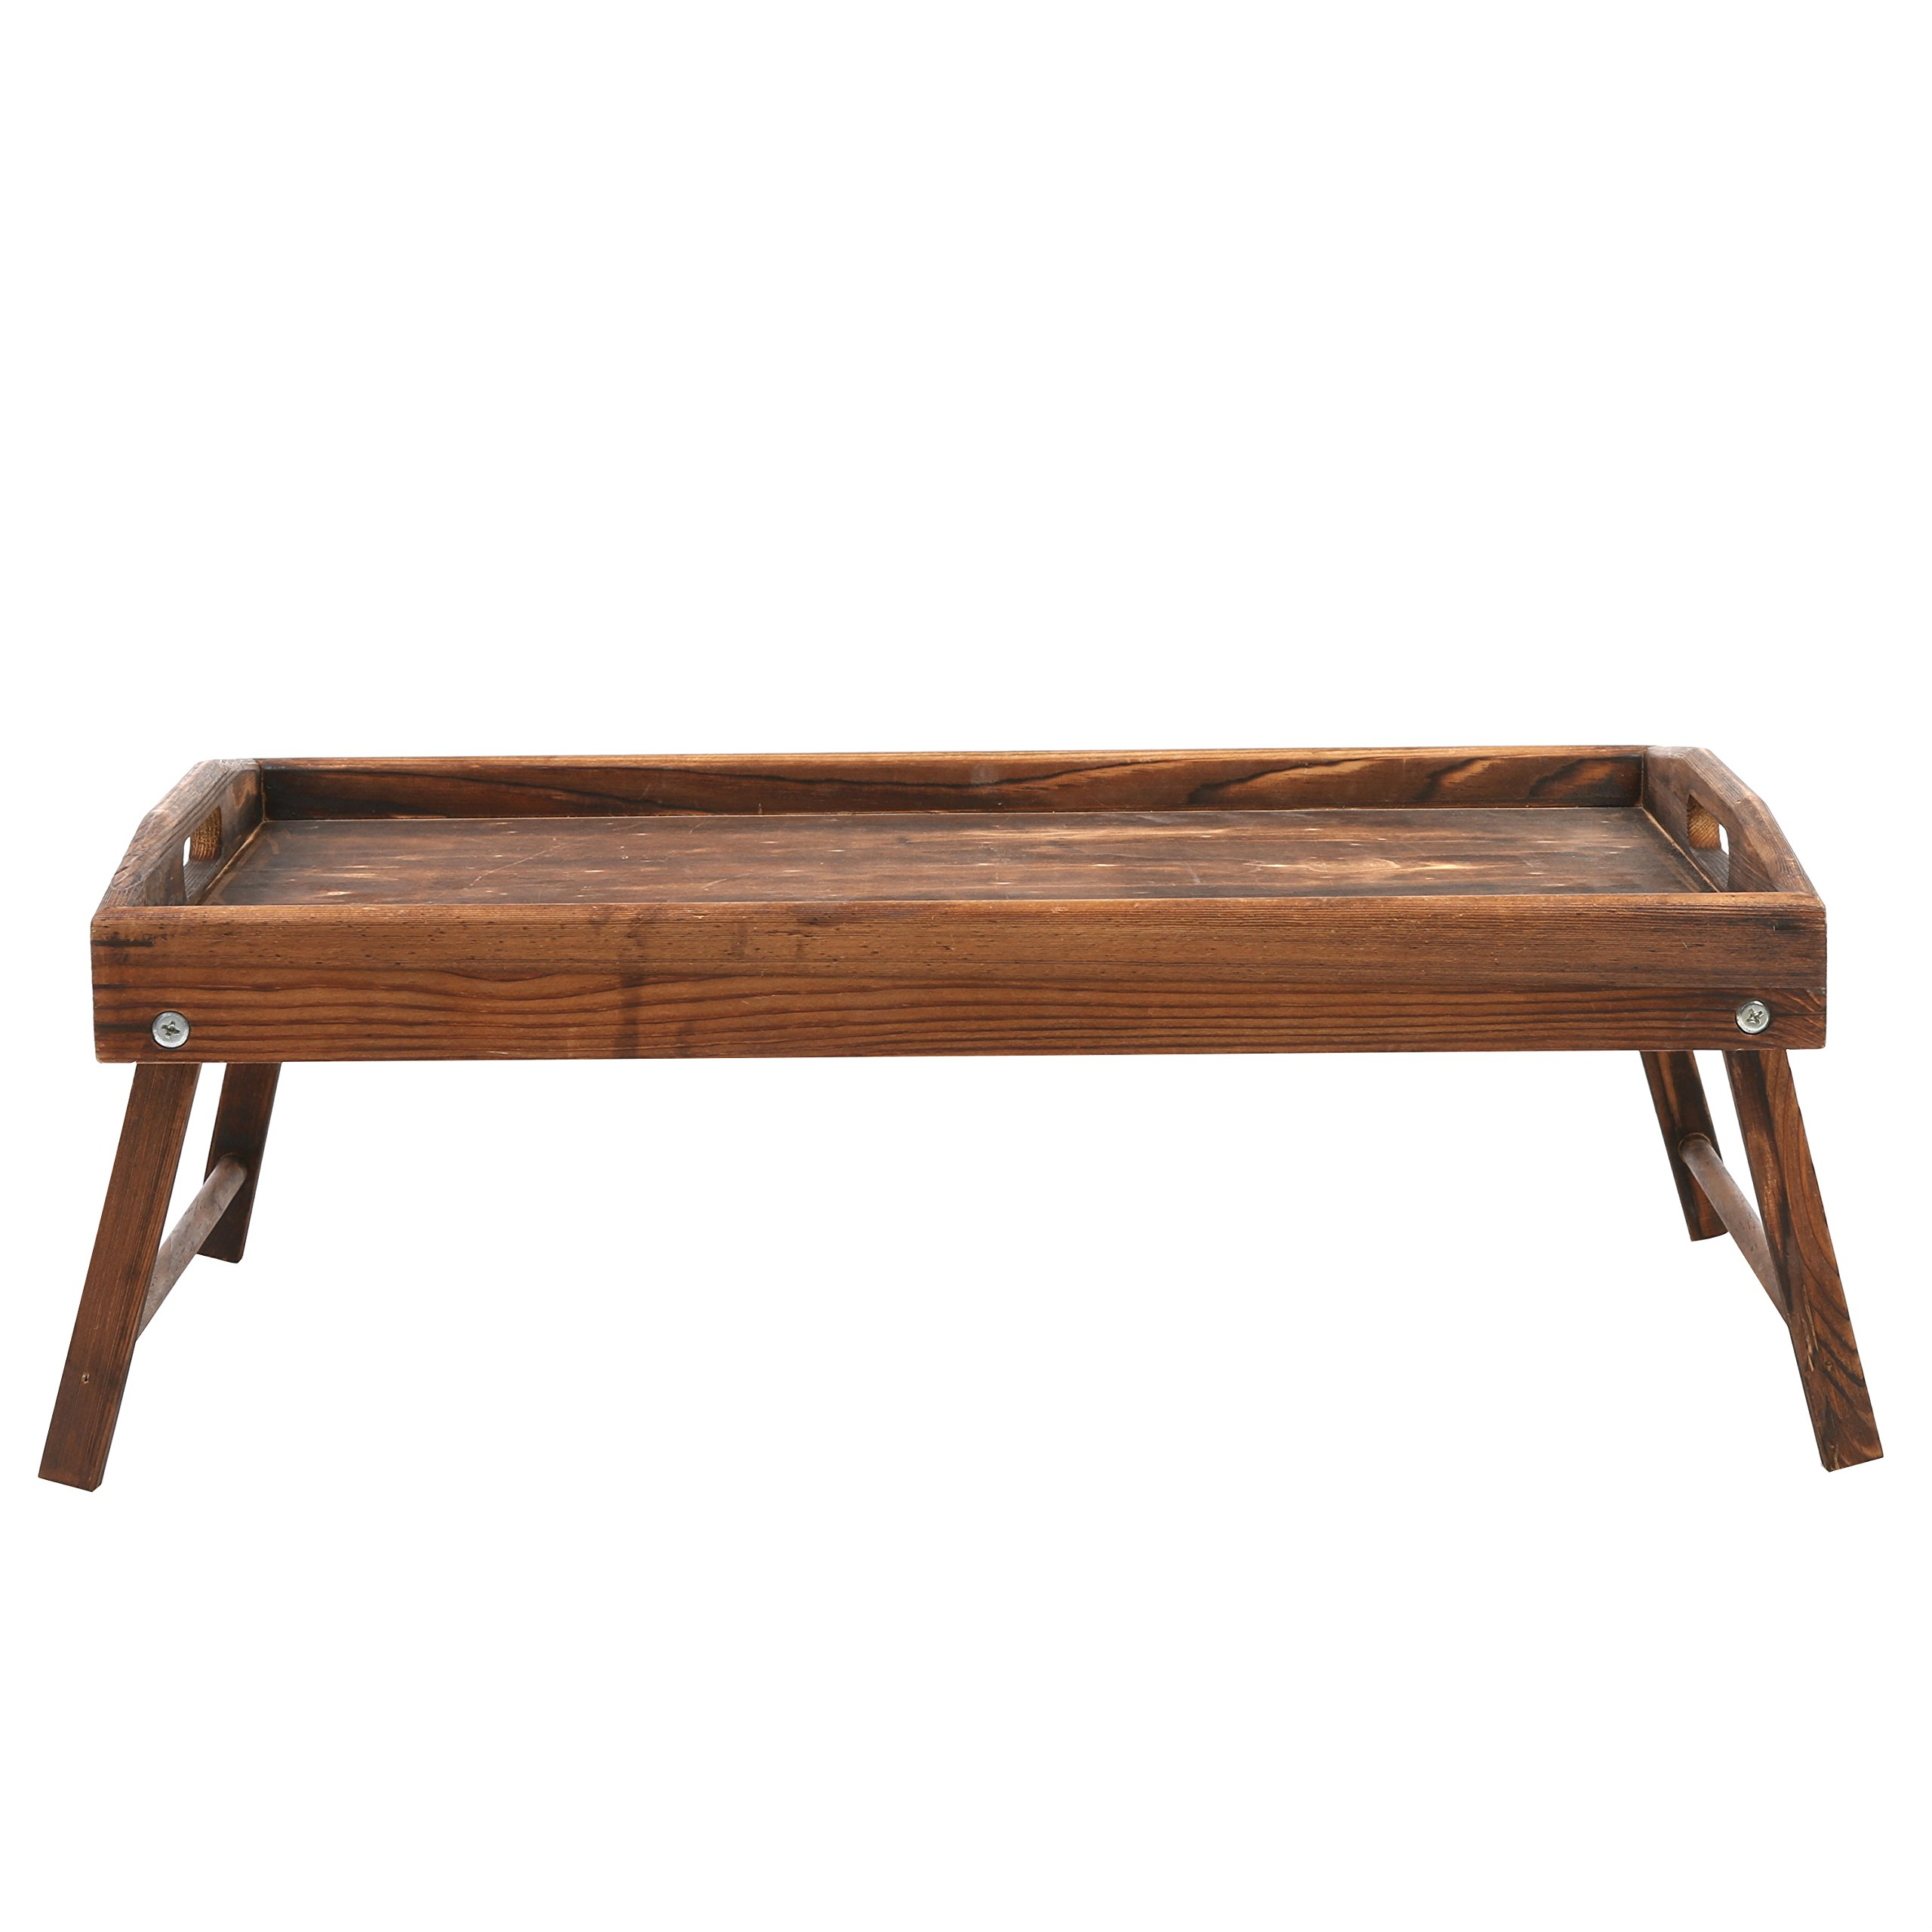 Country Rustic Torched Wood Food Serving Tray, Breakfast in Bed Table with Folding Legs by MyGift (Image #4)